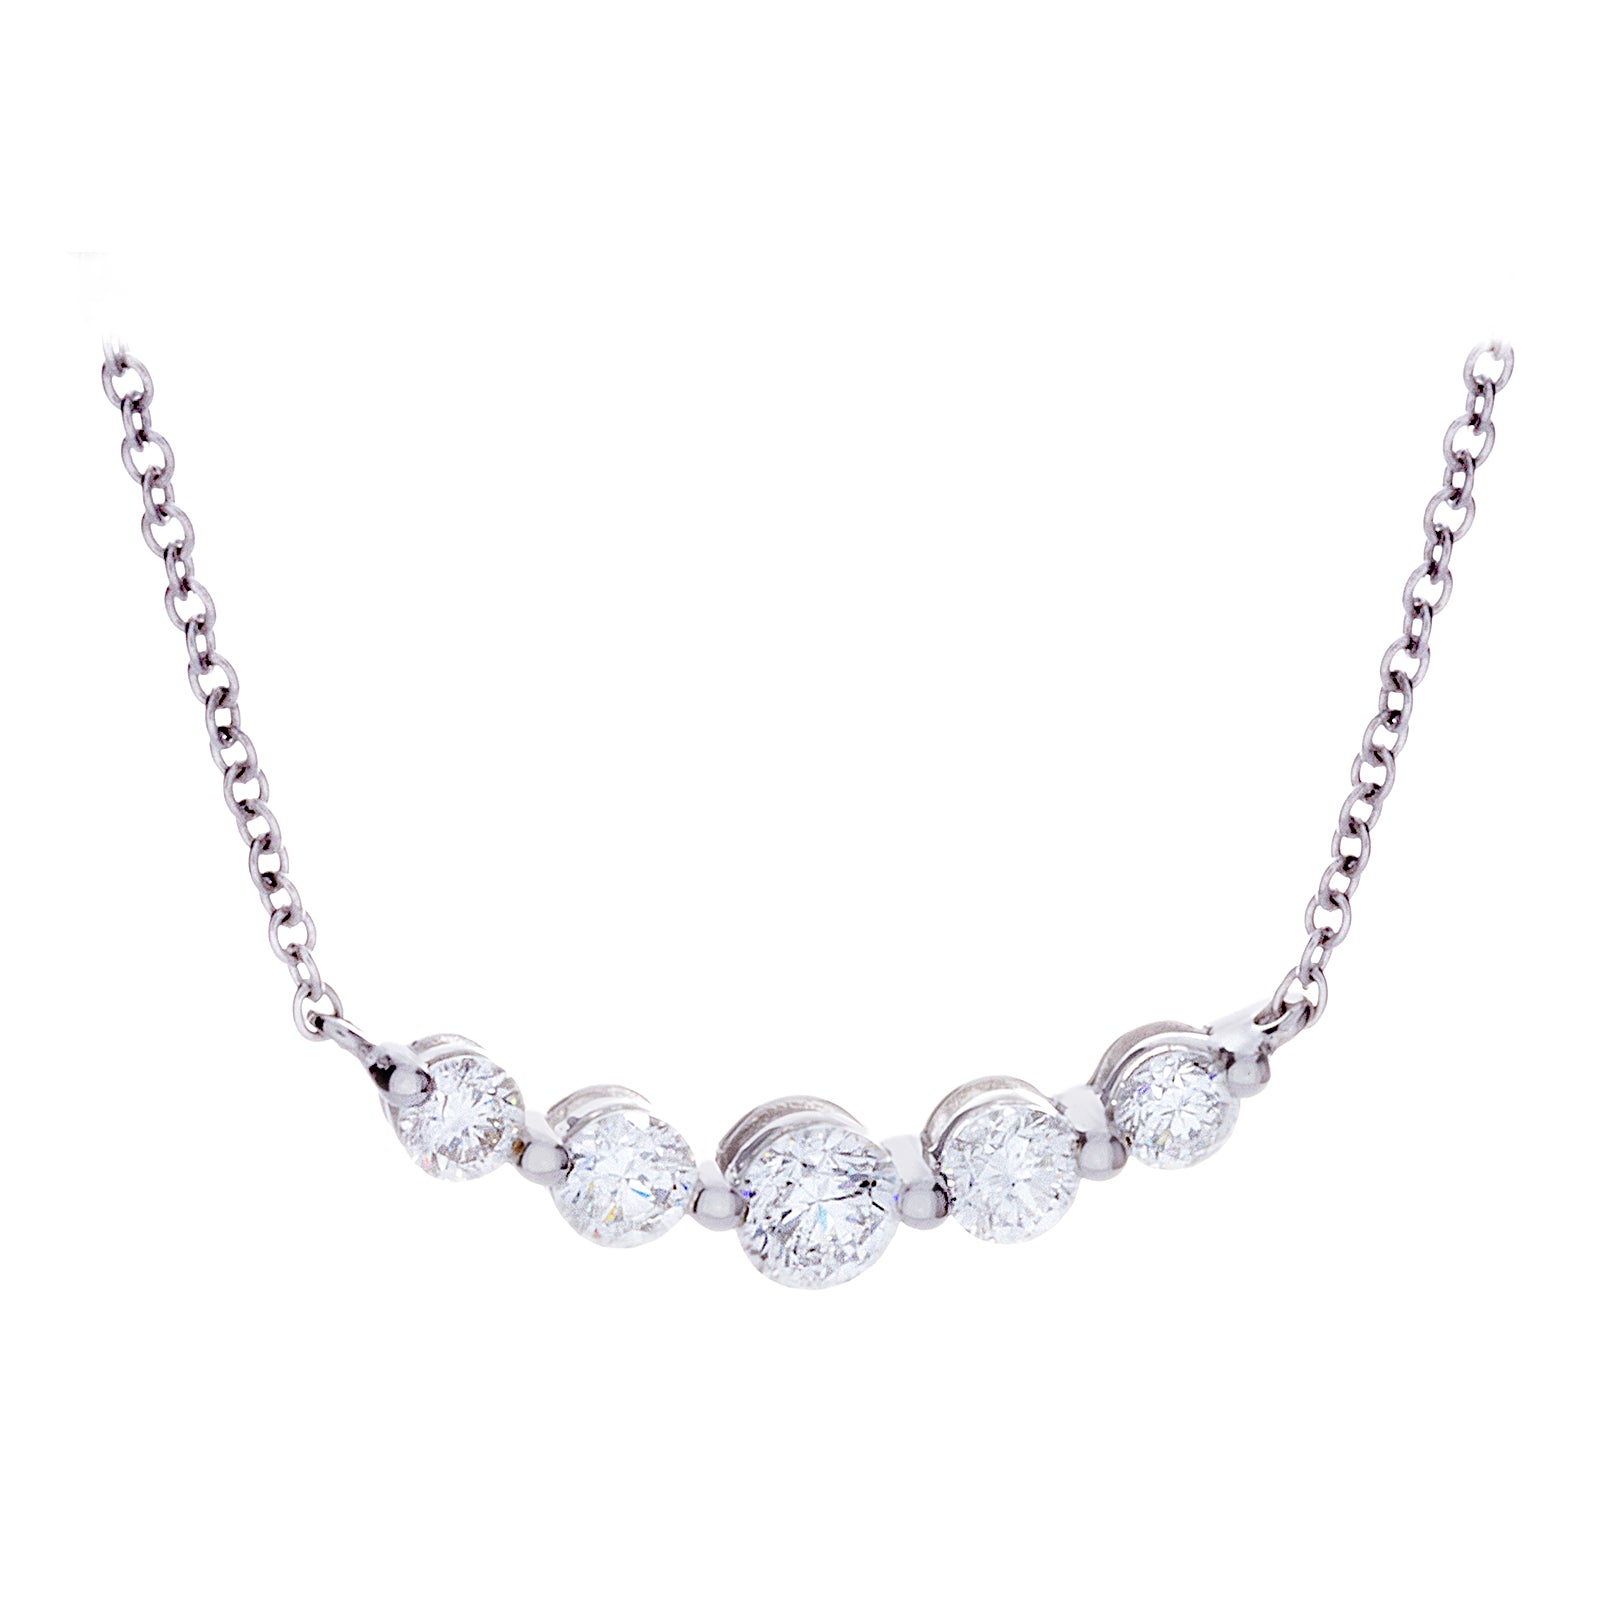 Diamonds & 14K White Gold Necklace - SOLD/CAN BE SPECIAL ORDERED WITH 4-6 WEEKS DELIVERY TIME FRAME